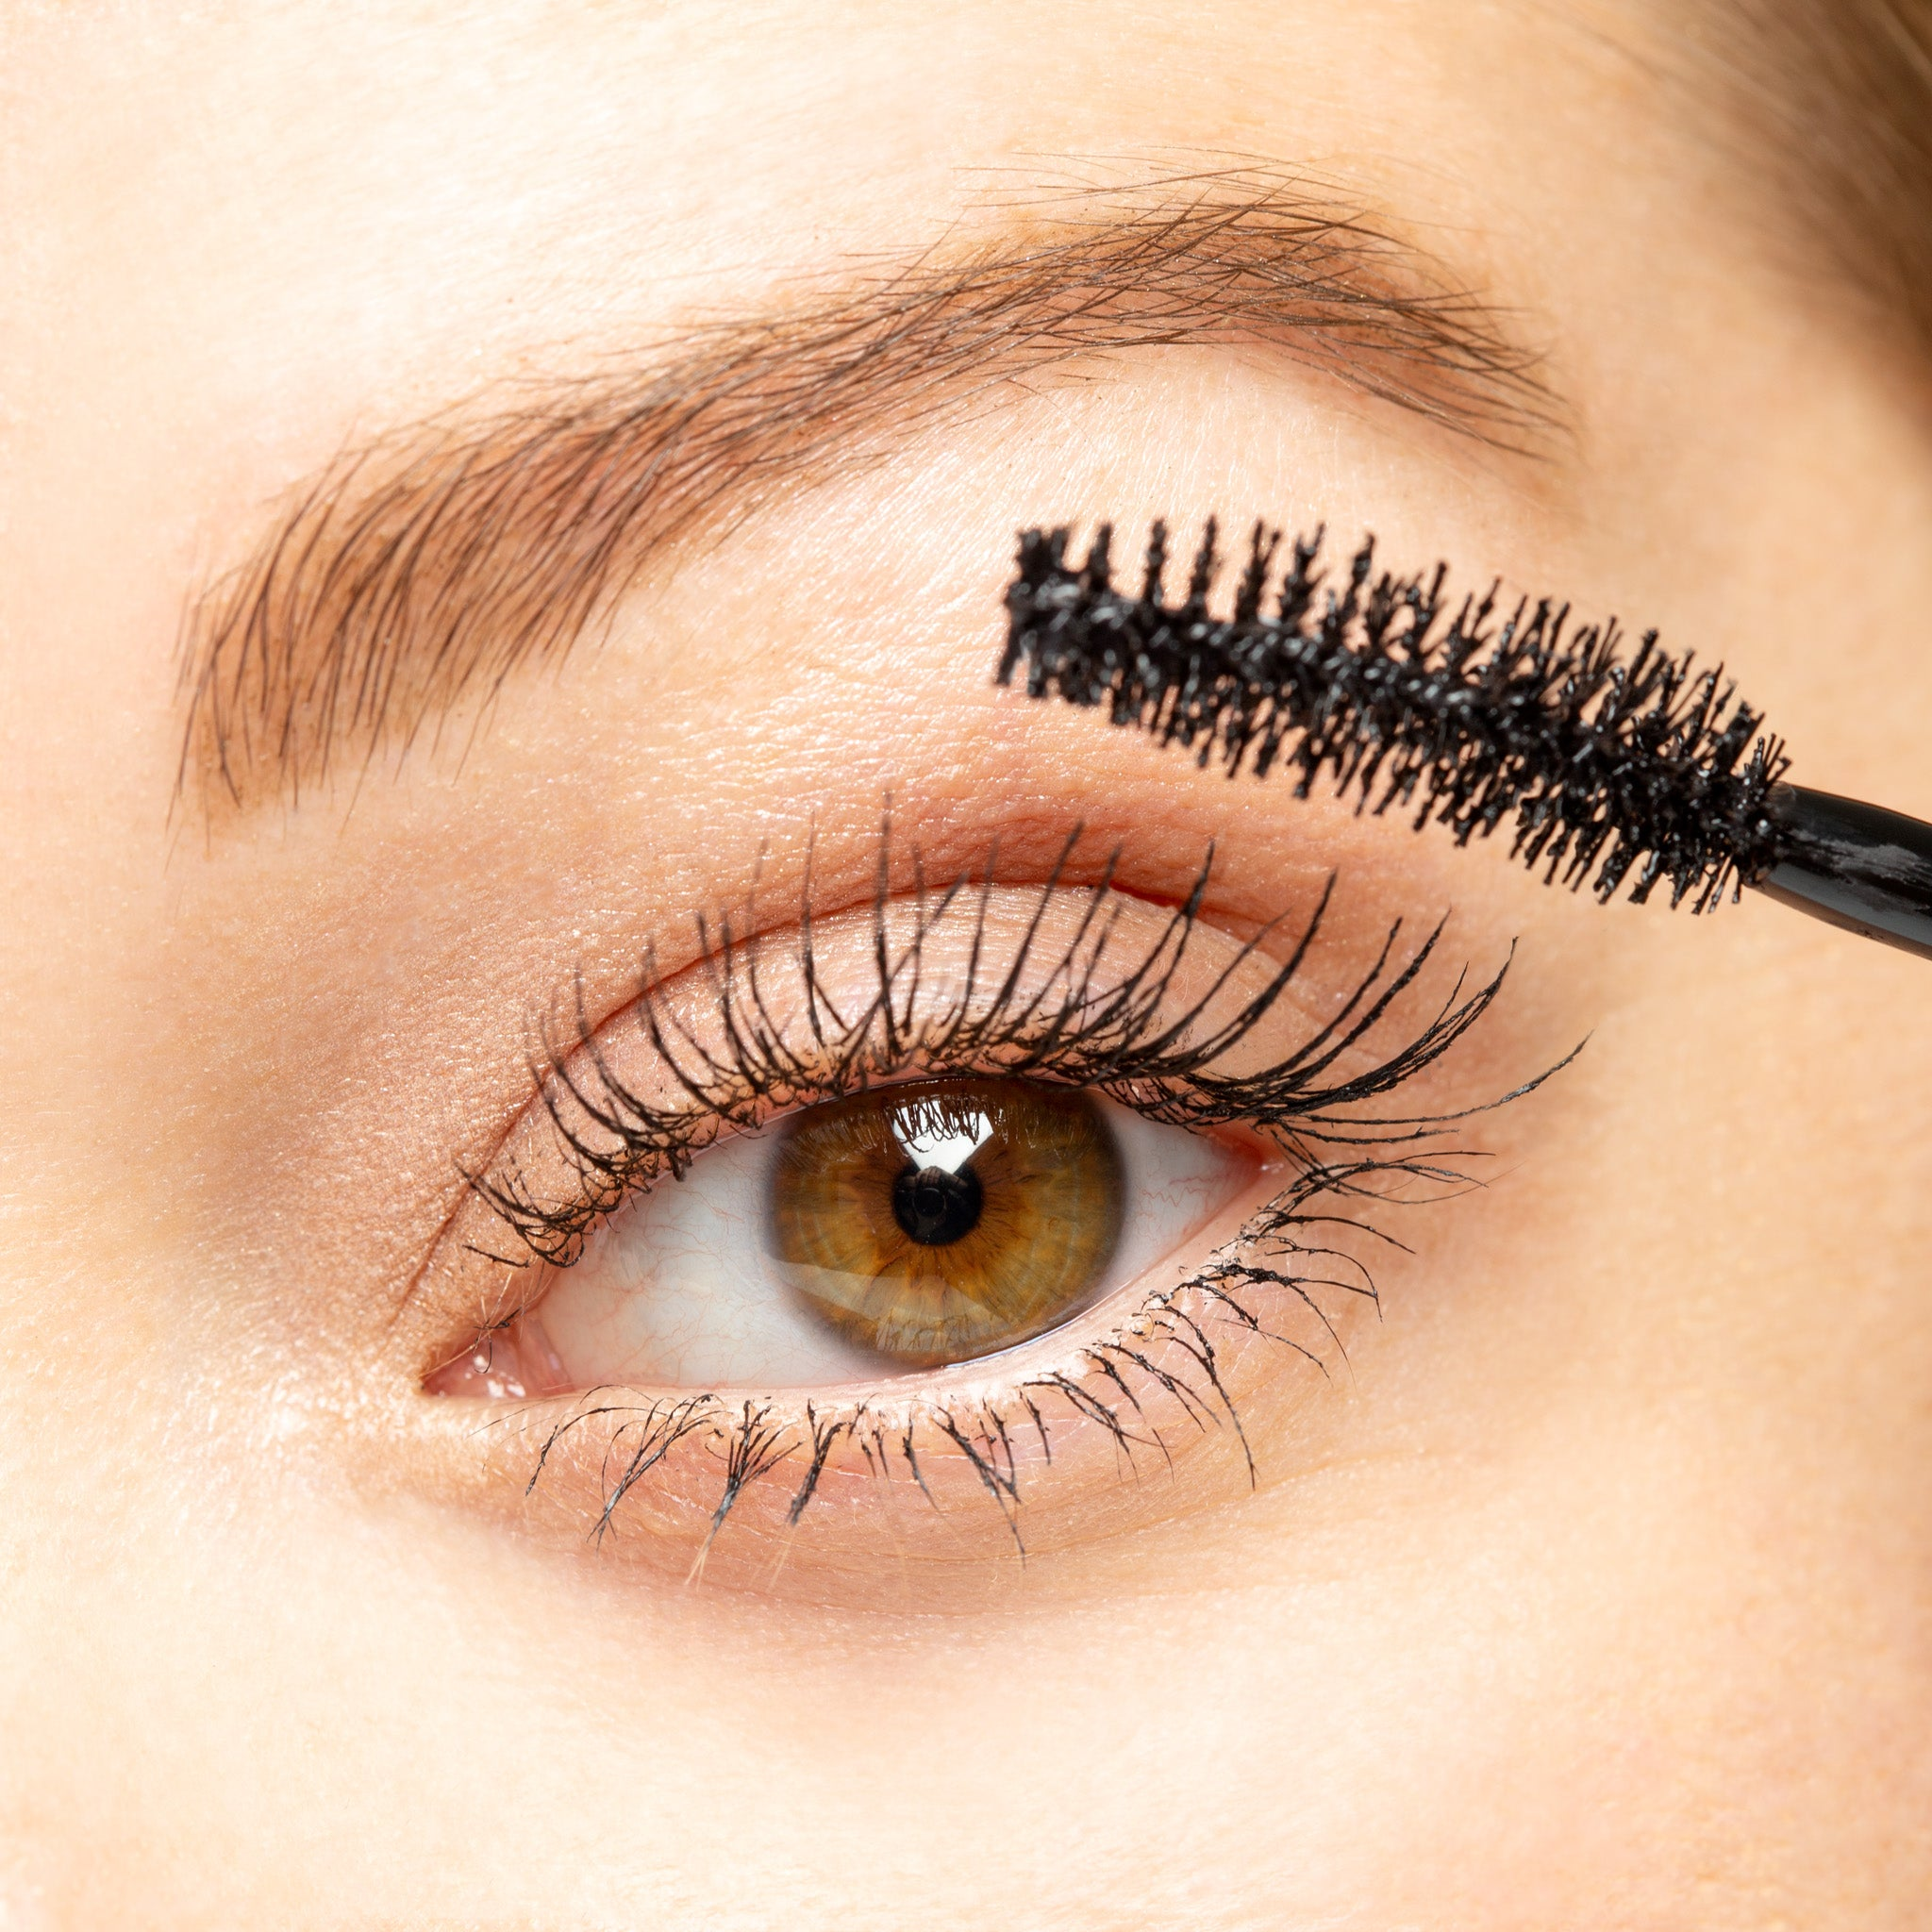 Lune+Aster Eclipse Volumizing & Curling Mascara application to eyelashes